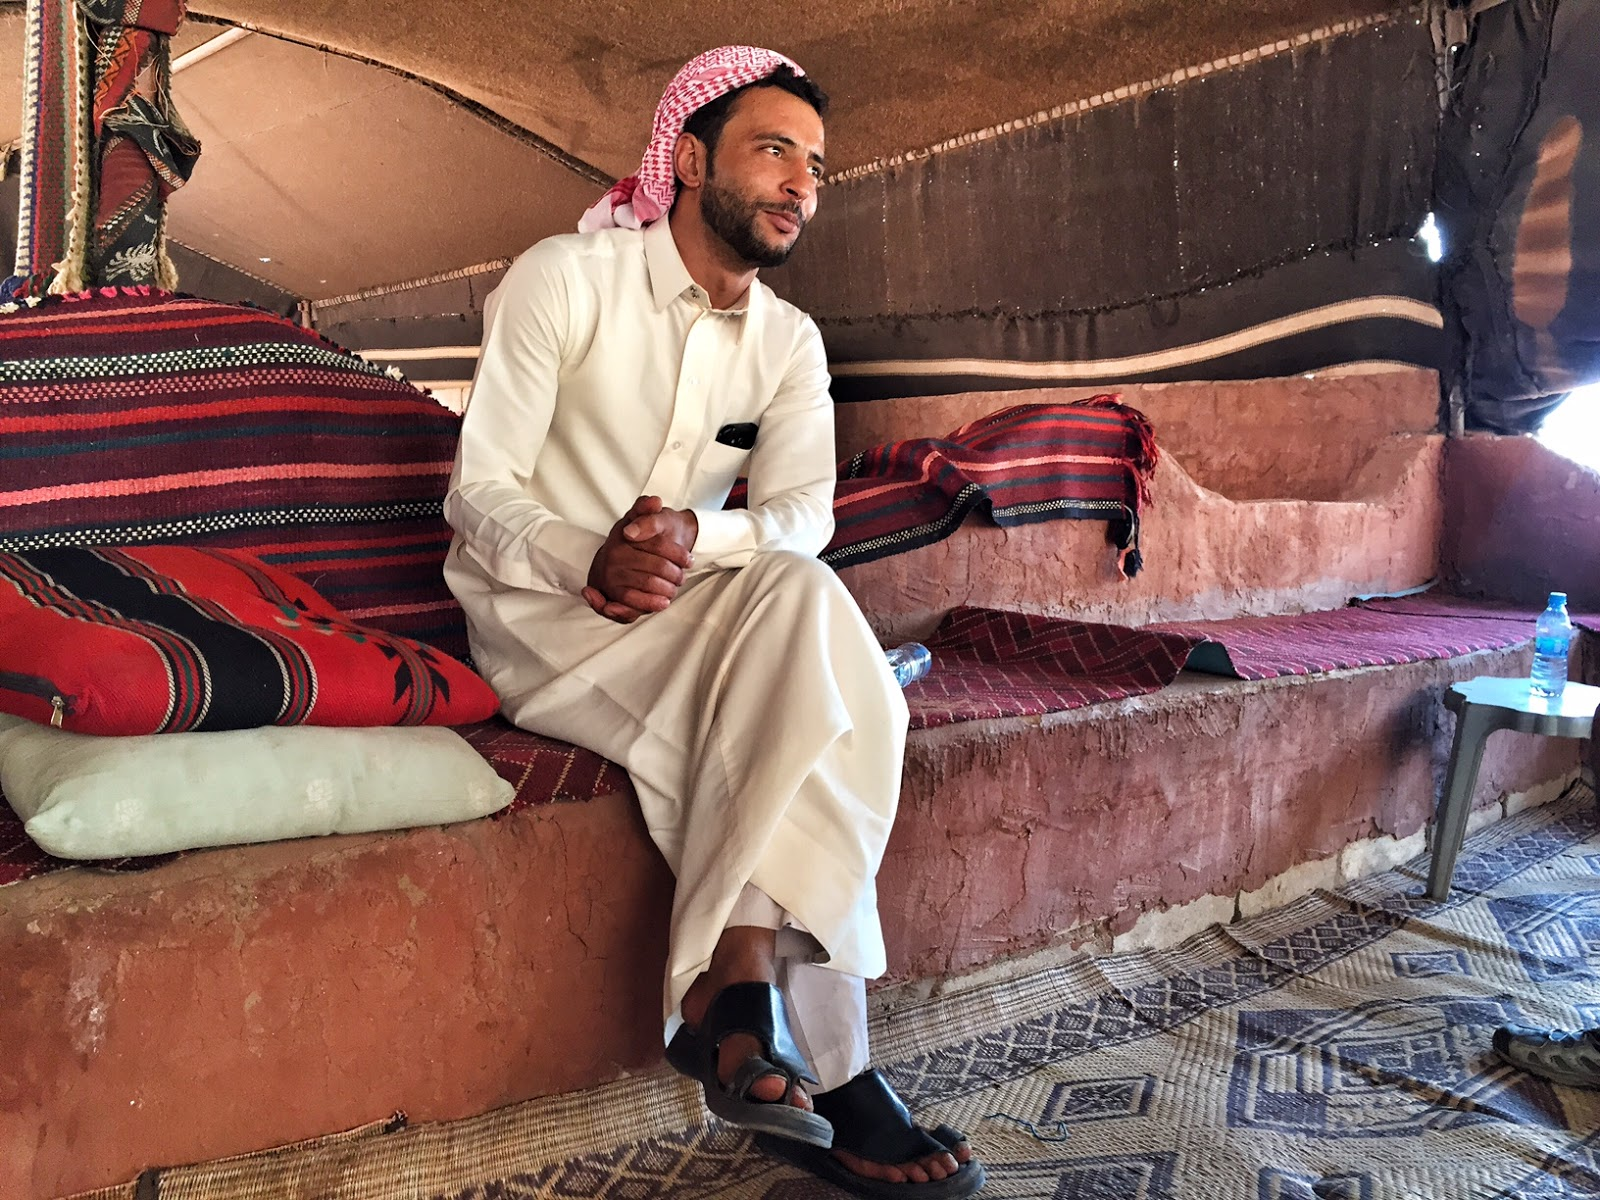 sultan jewish single men He's always stood out from the crowd, but now sultan kosen - the world's tallest man - may become even more recognisable as he prepares to star in his first feature film achieving the.